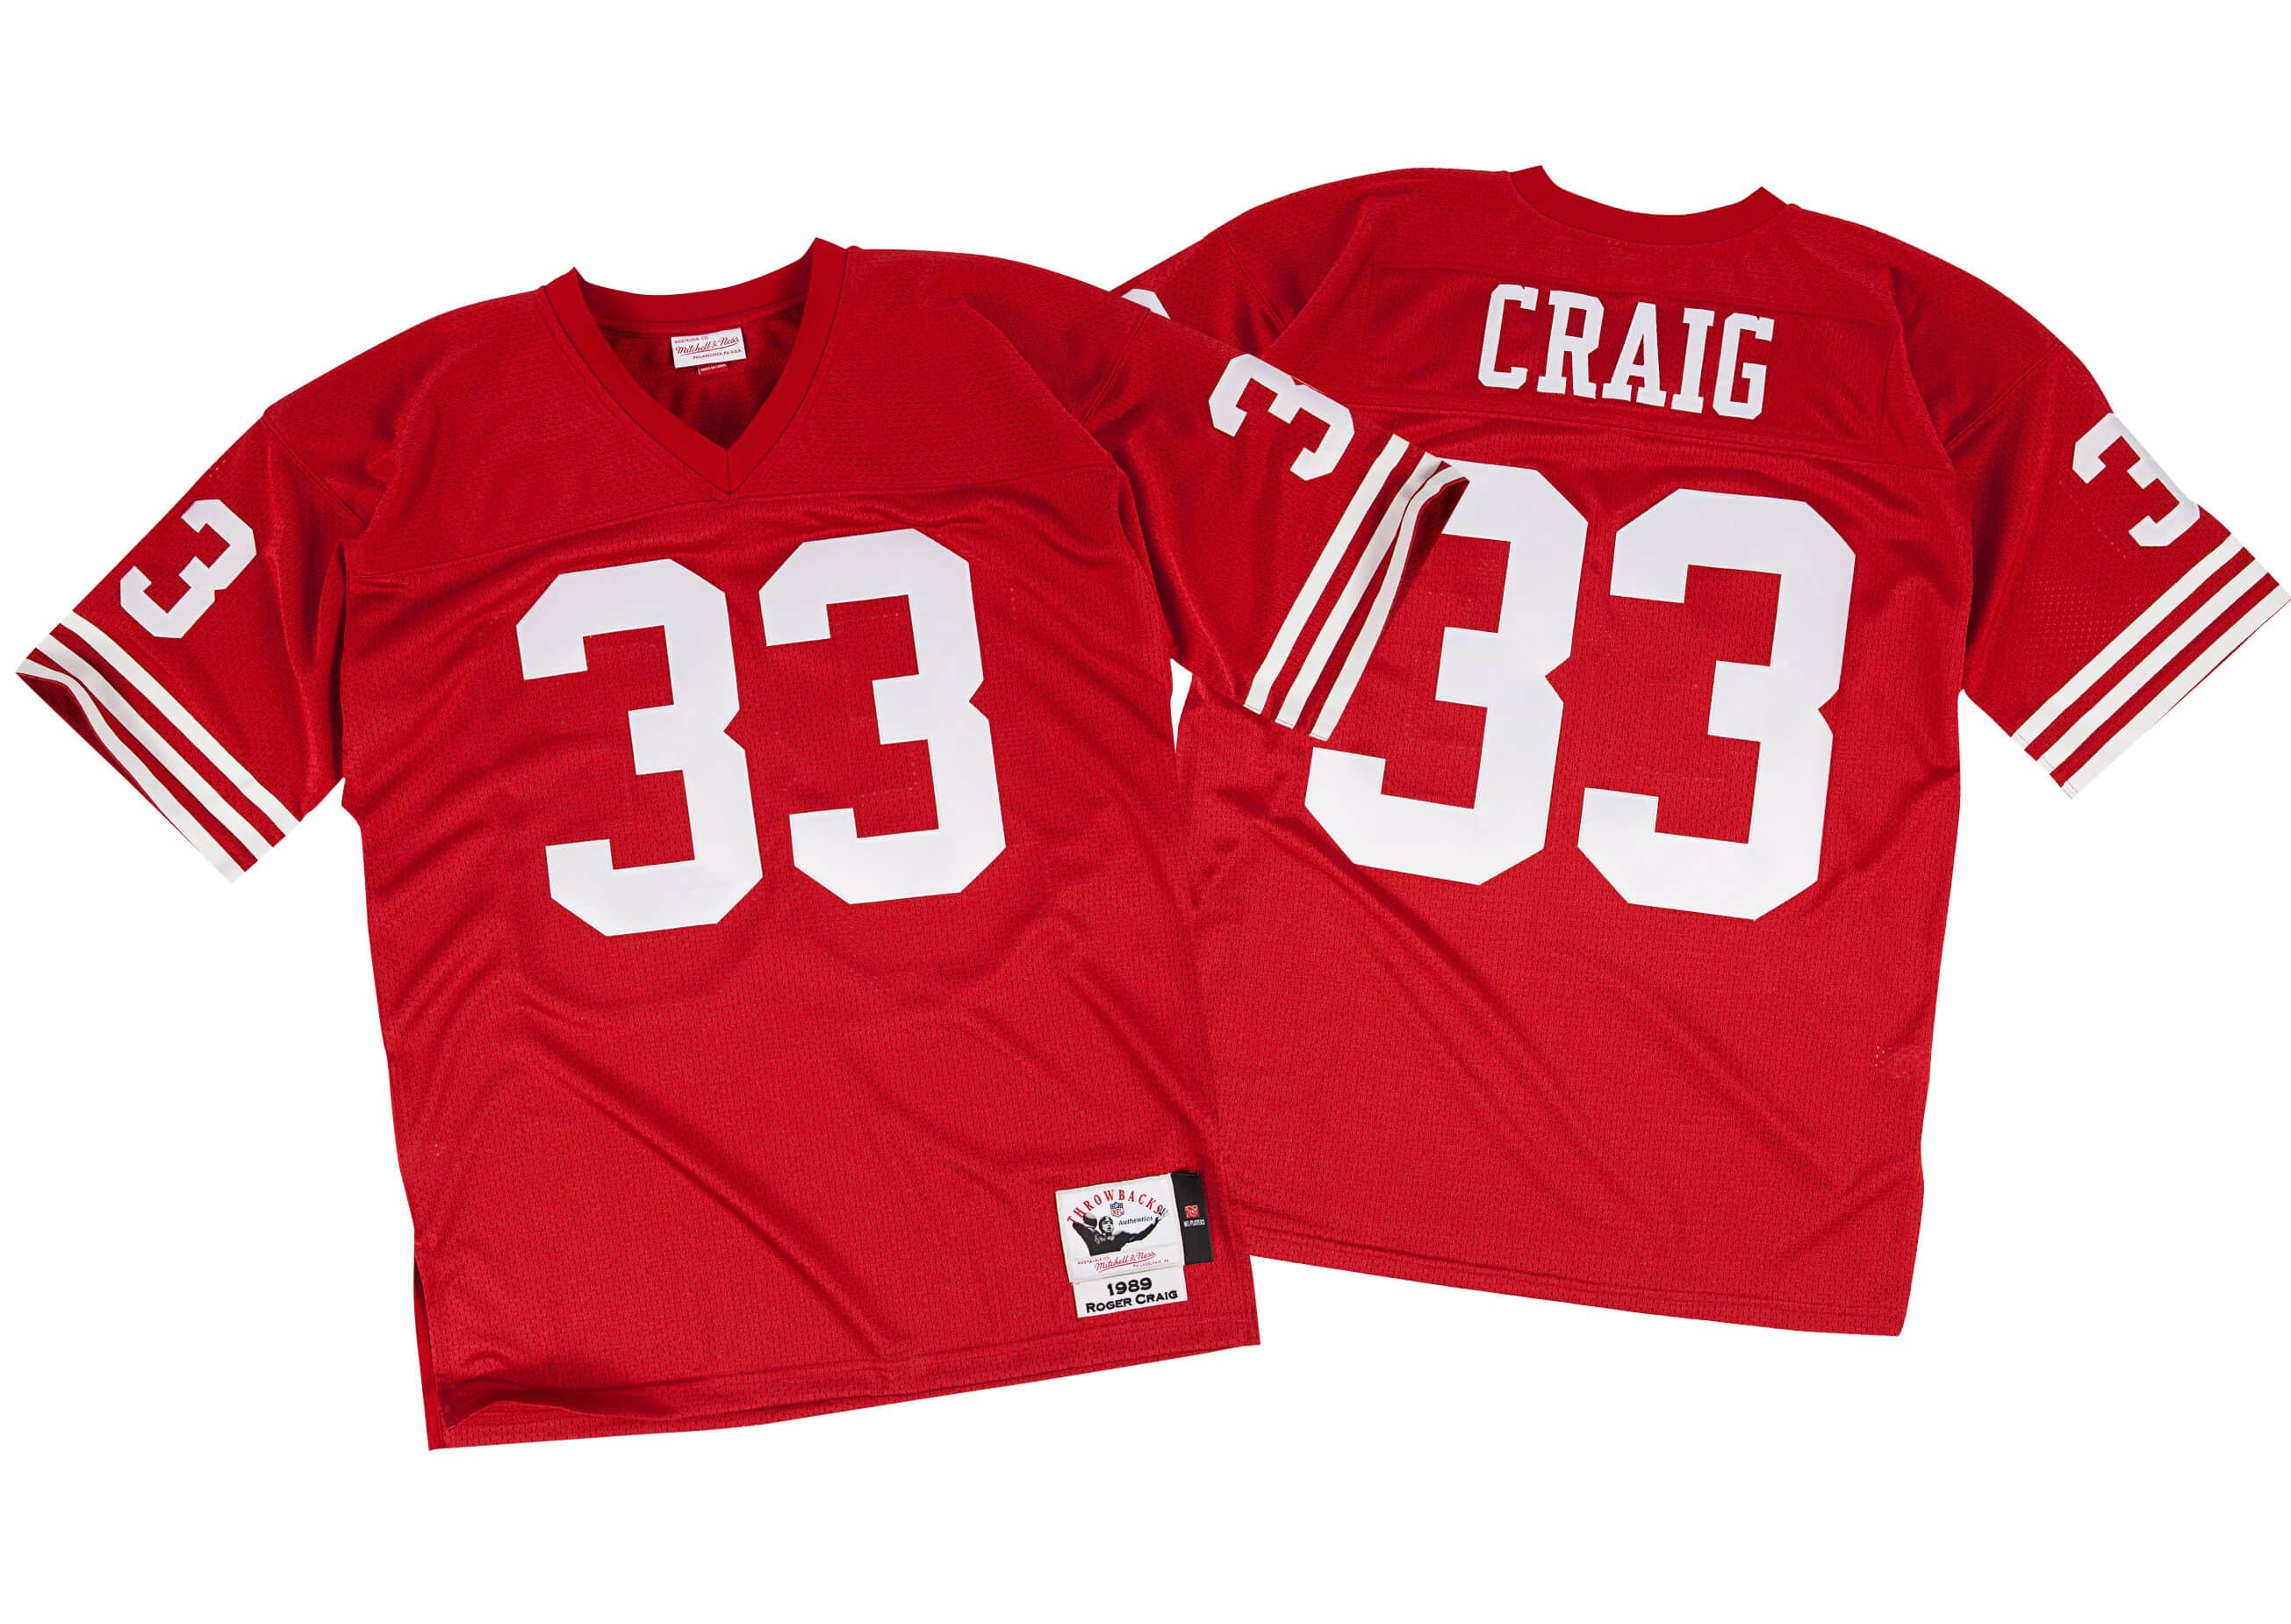 Roger Craig 1989 Authentic Jersey San Francisco 49ers